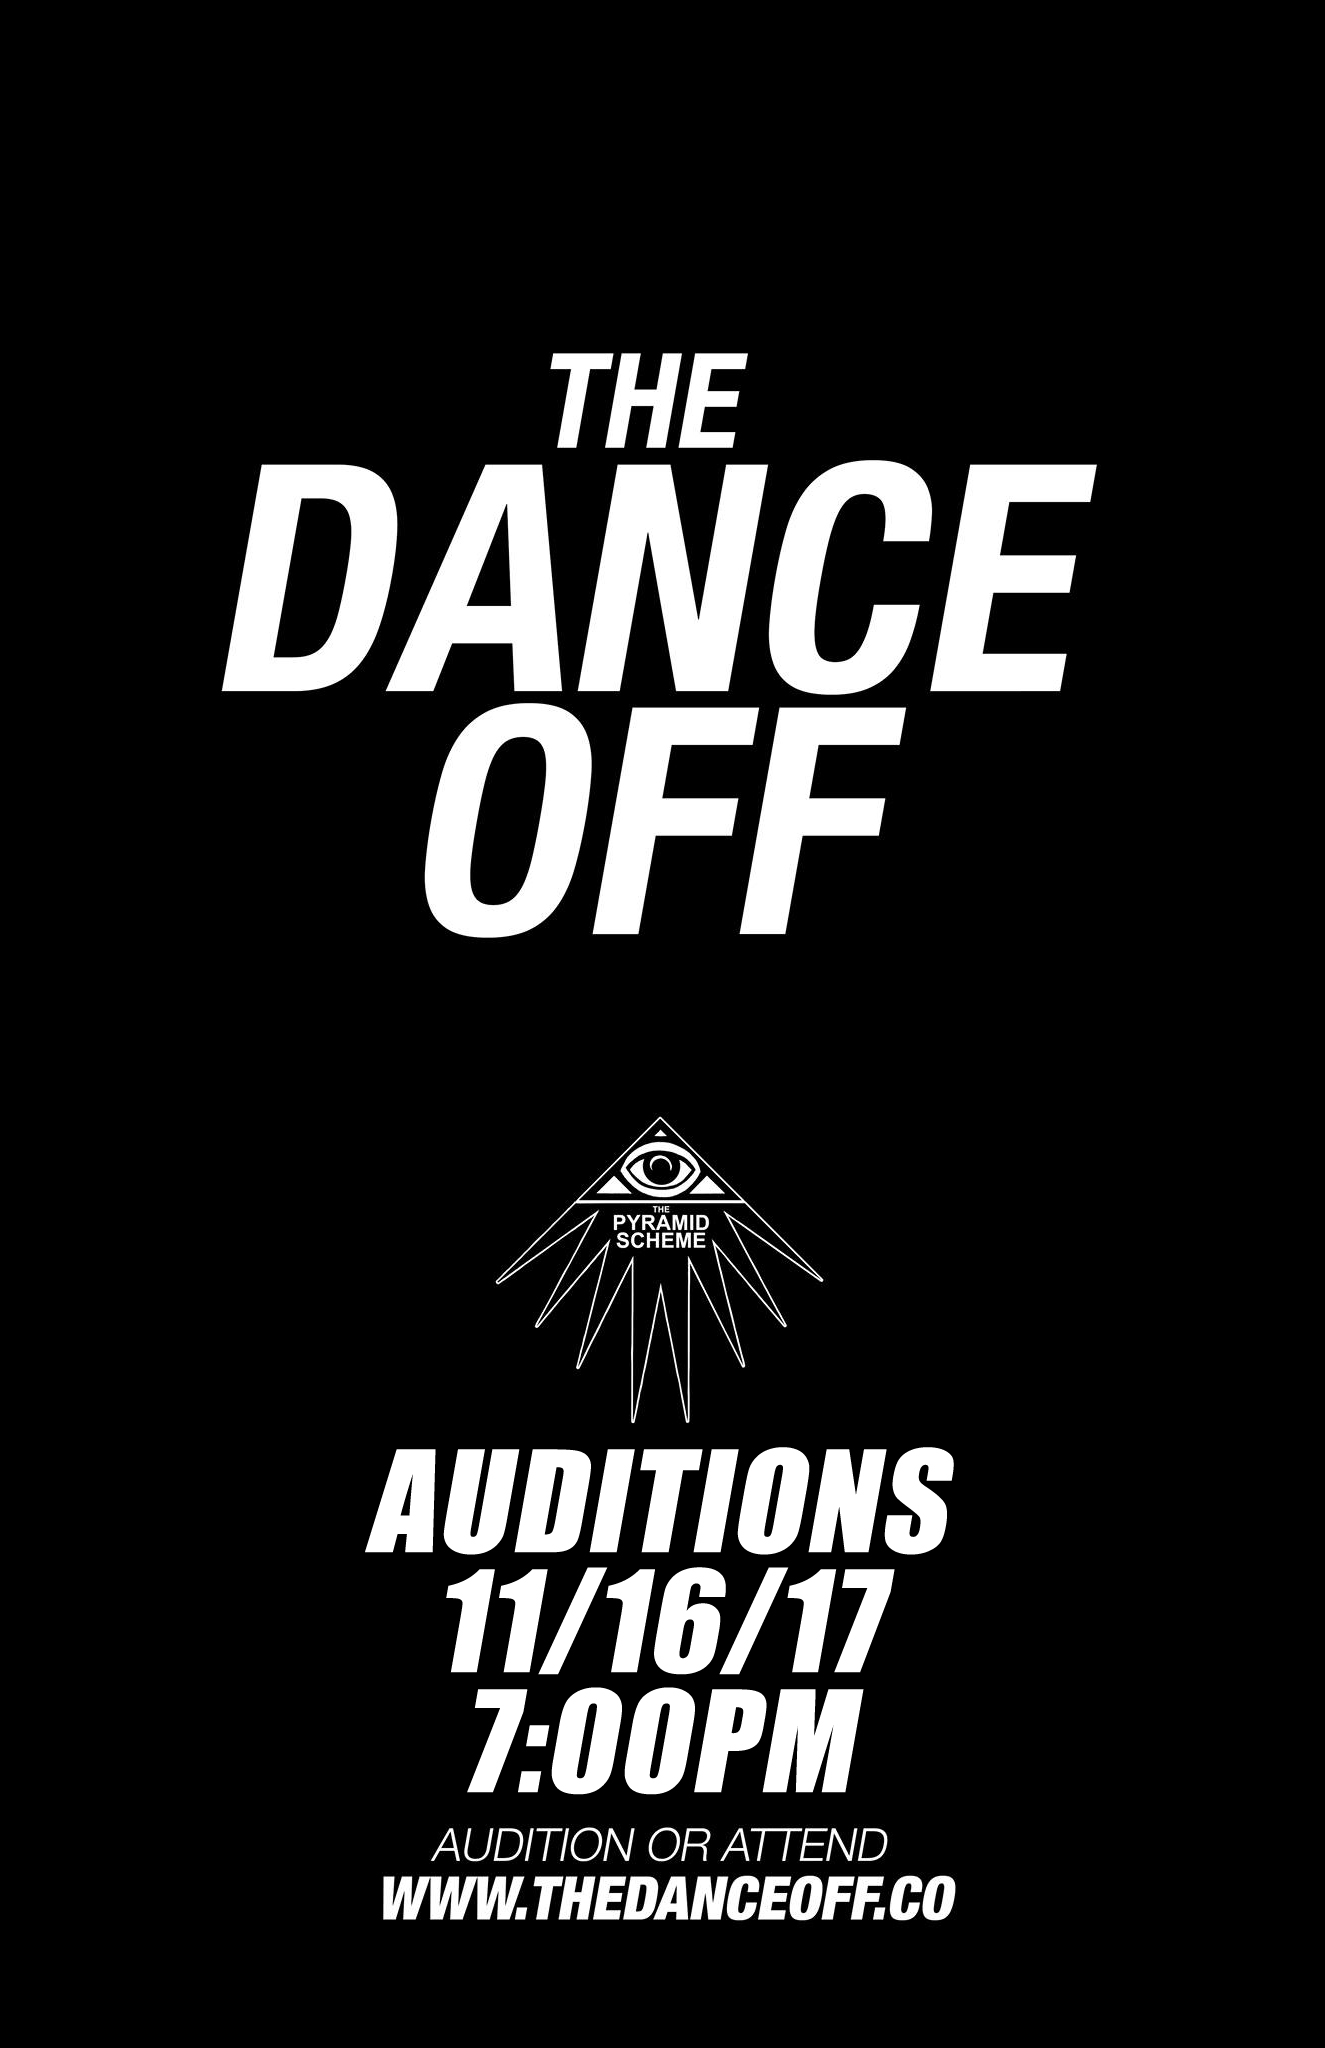 Auditions The Dance Off Pyramid Scheme